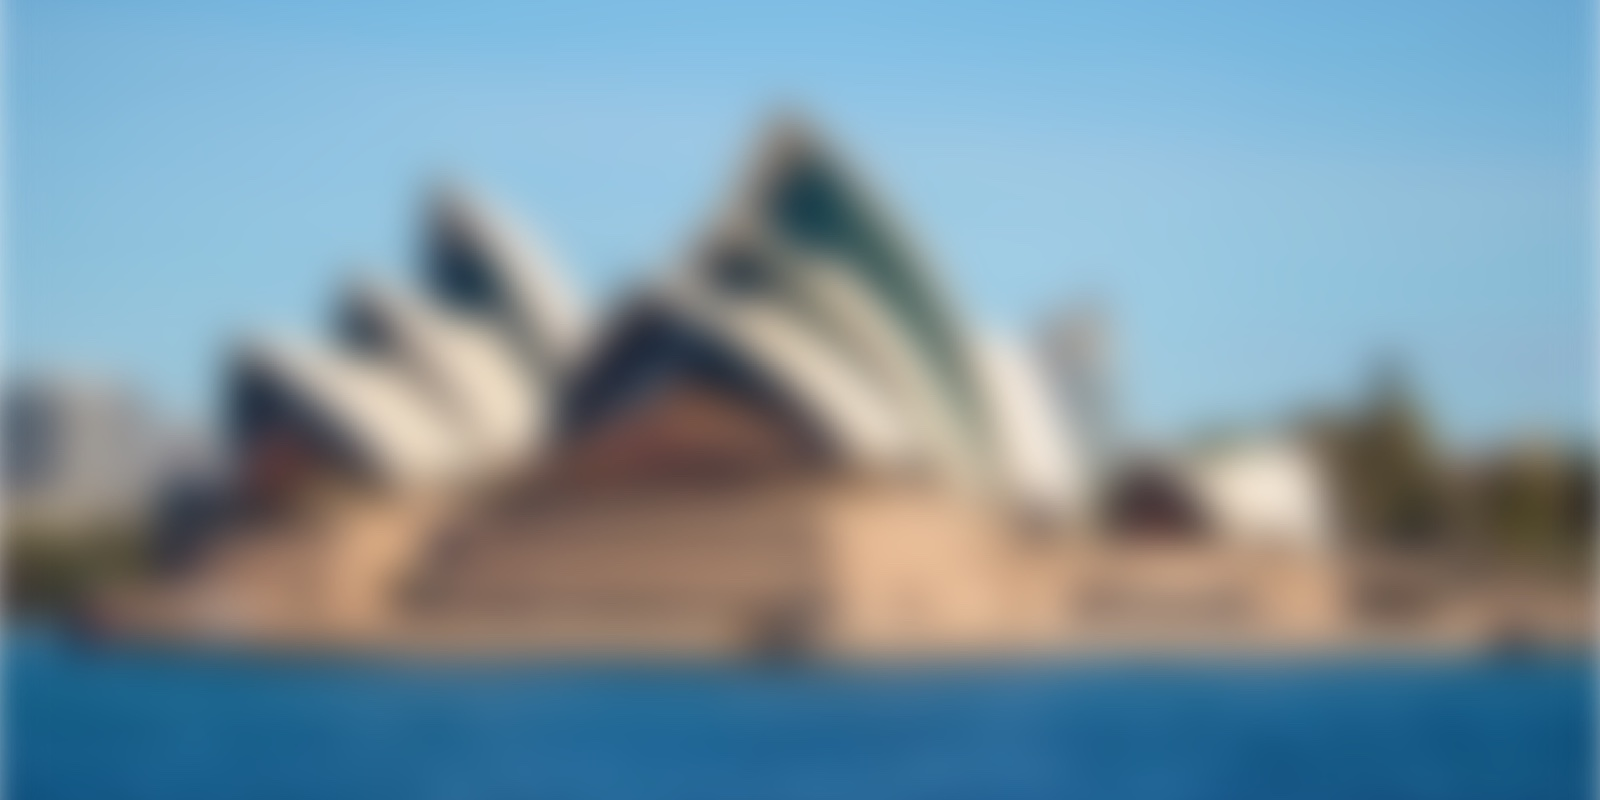 Can you name this blurred landmark?